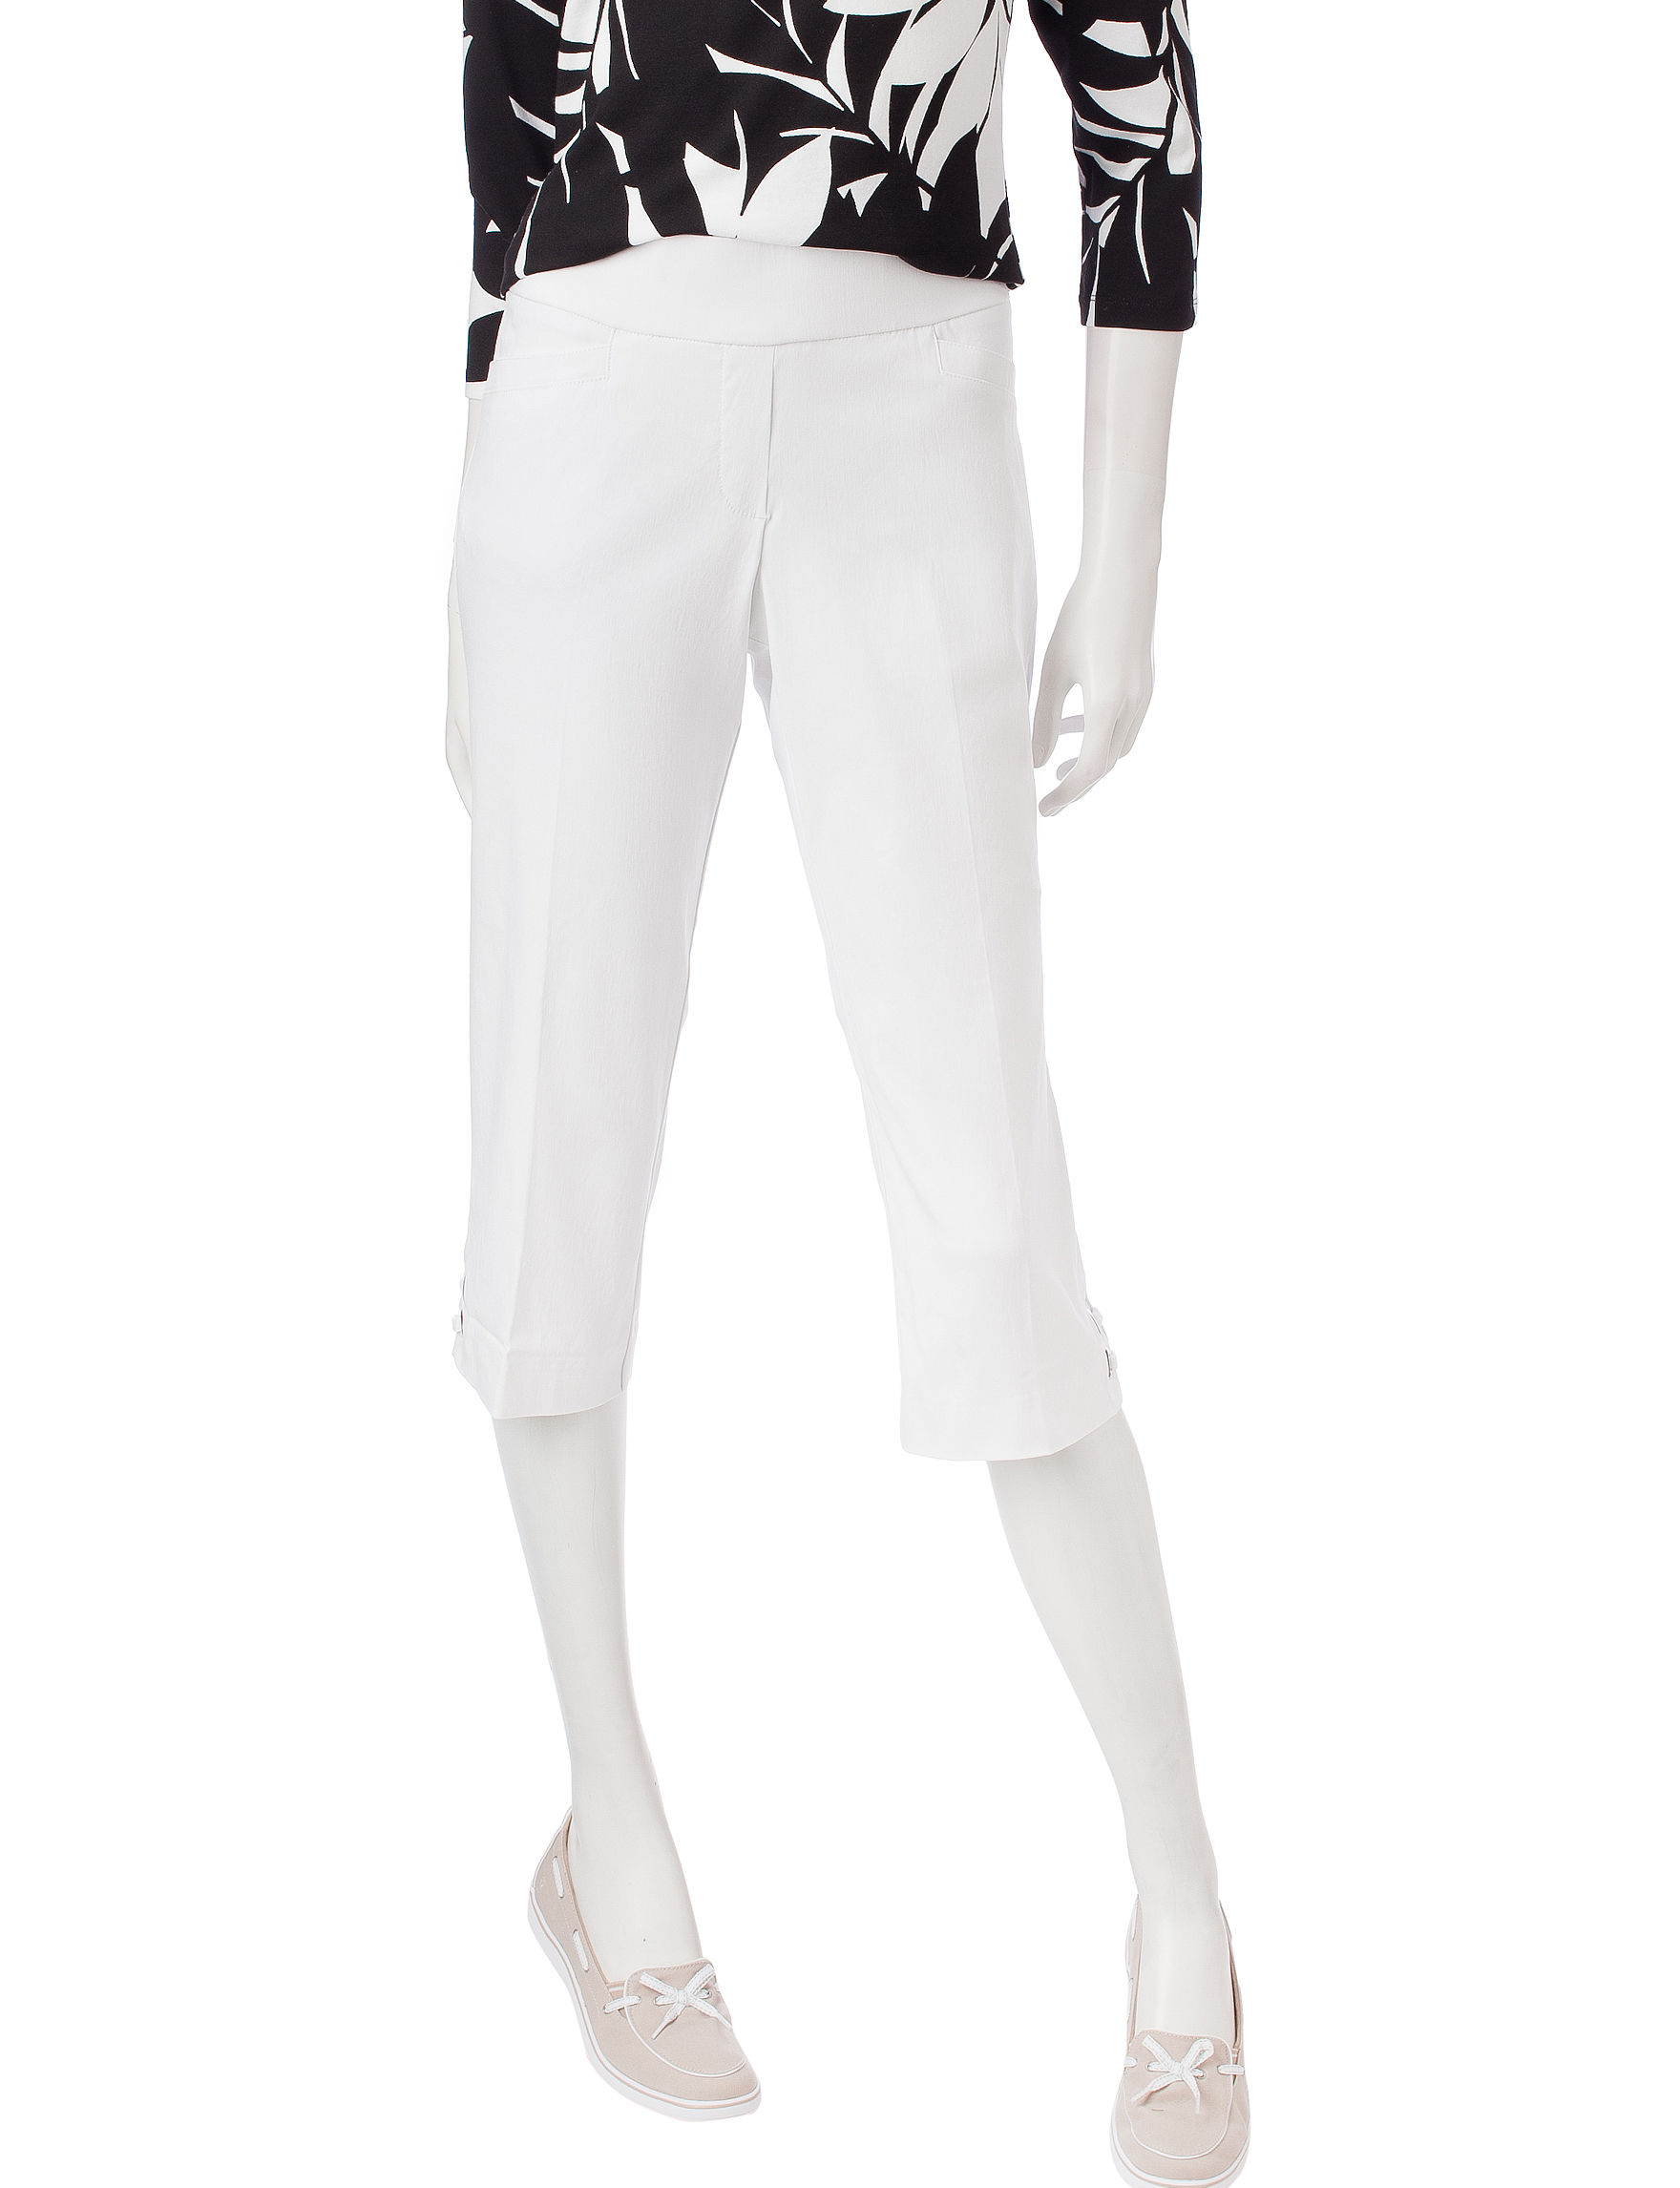 Briggs New York White Capris & Crops